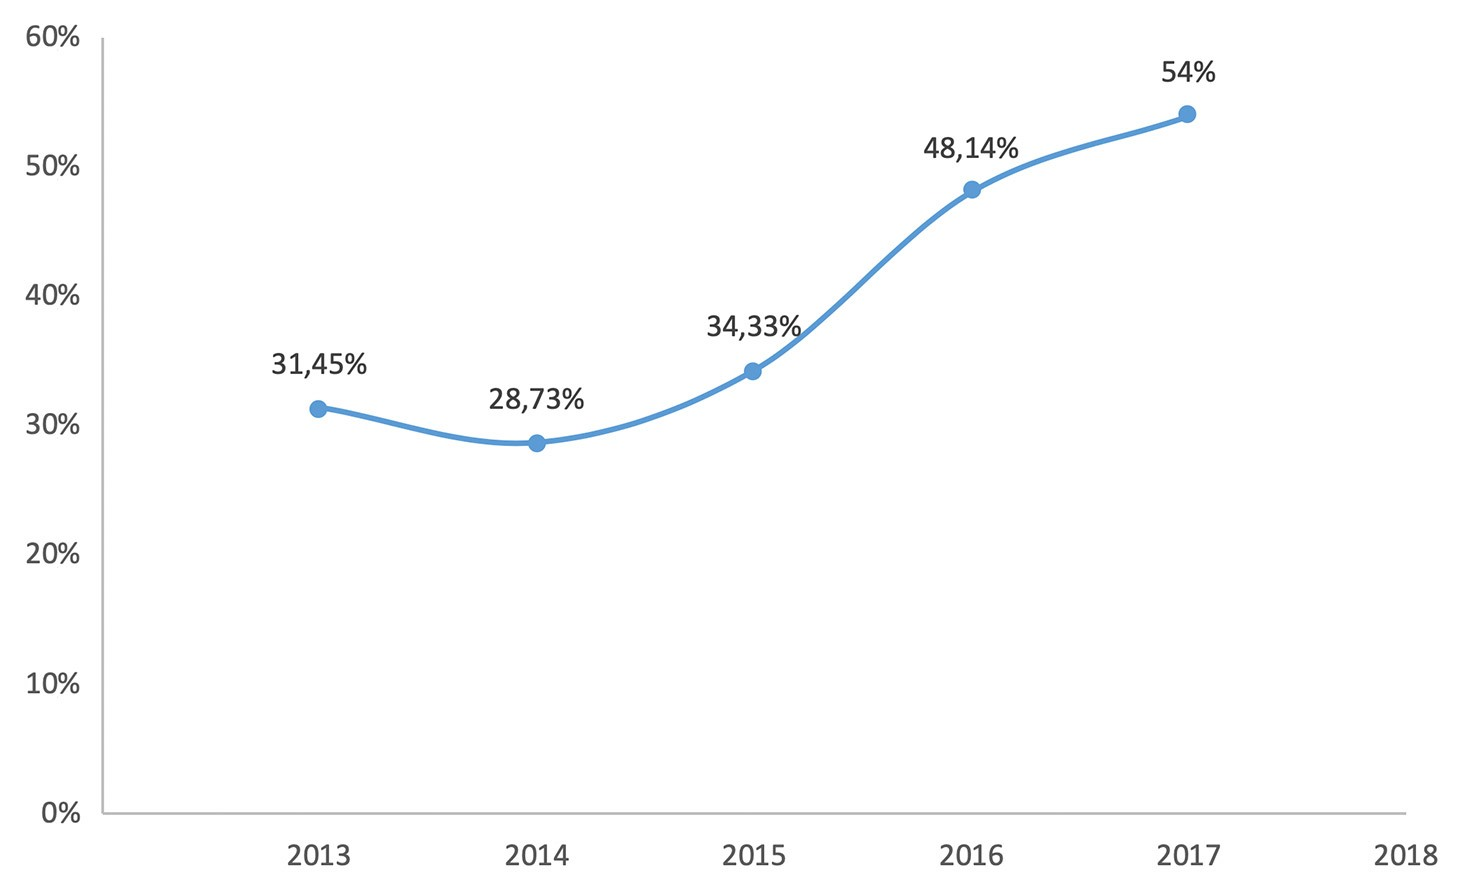 Increase in the share of financial phishing in the last years